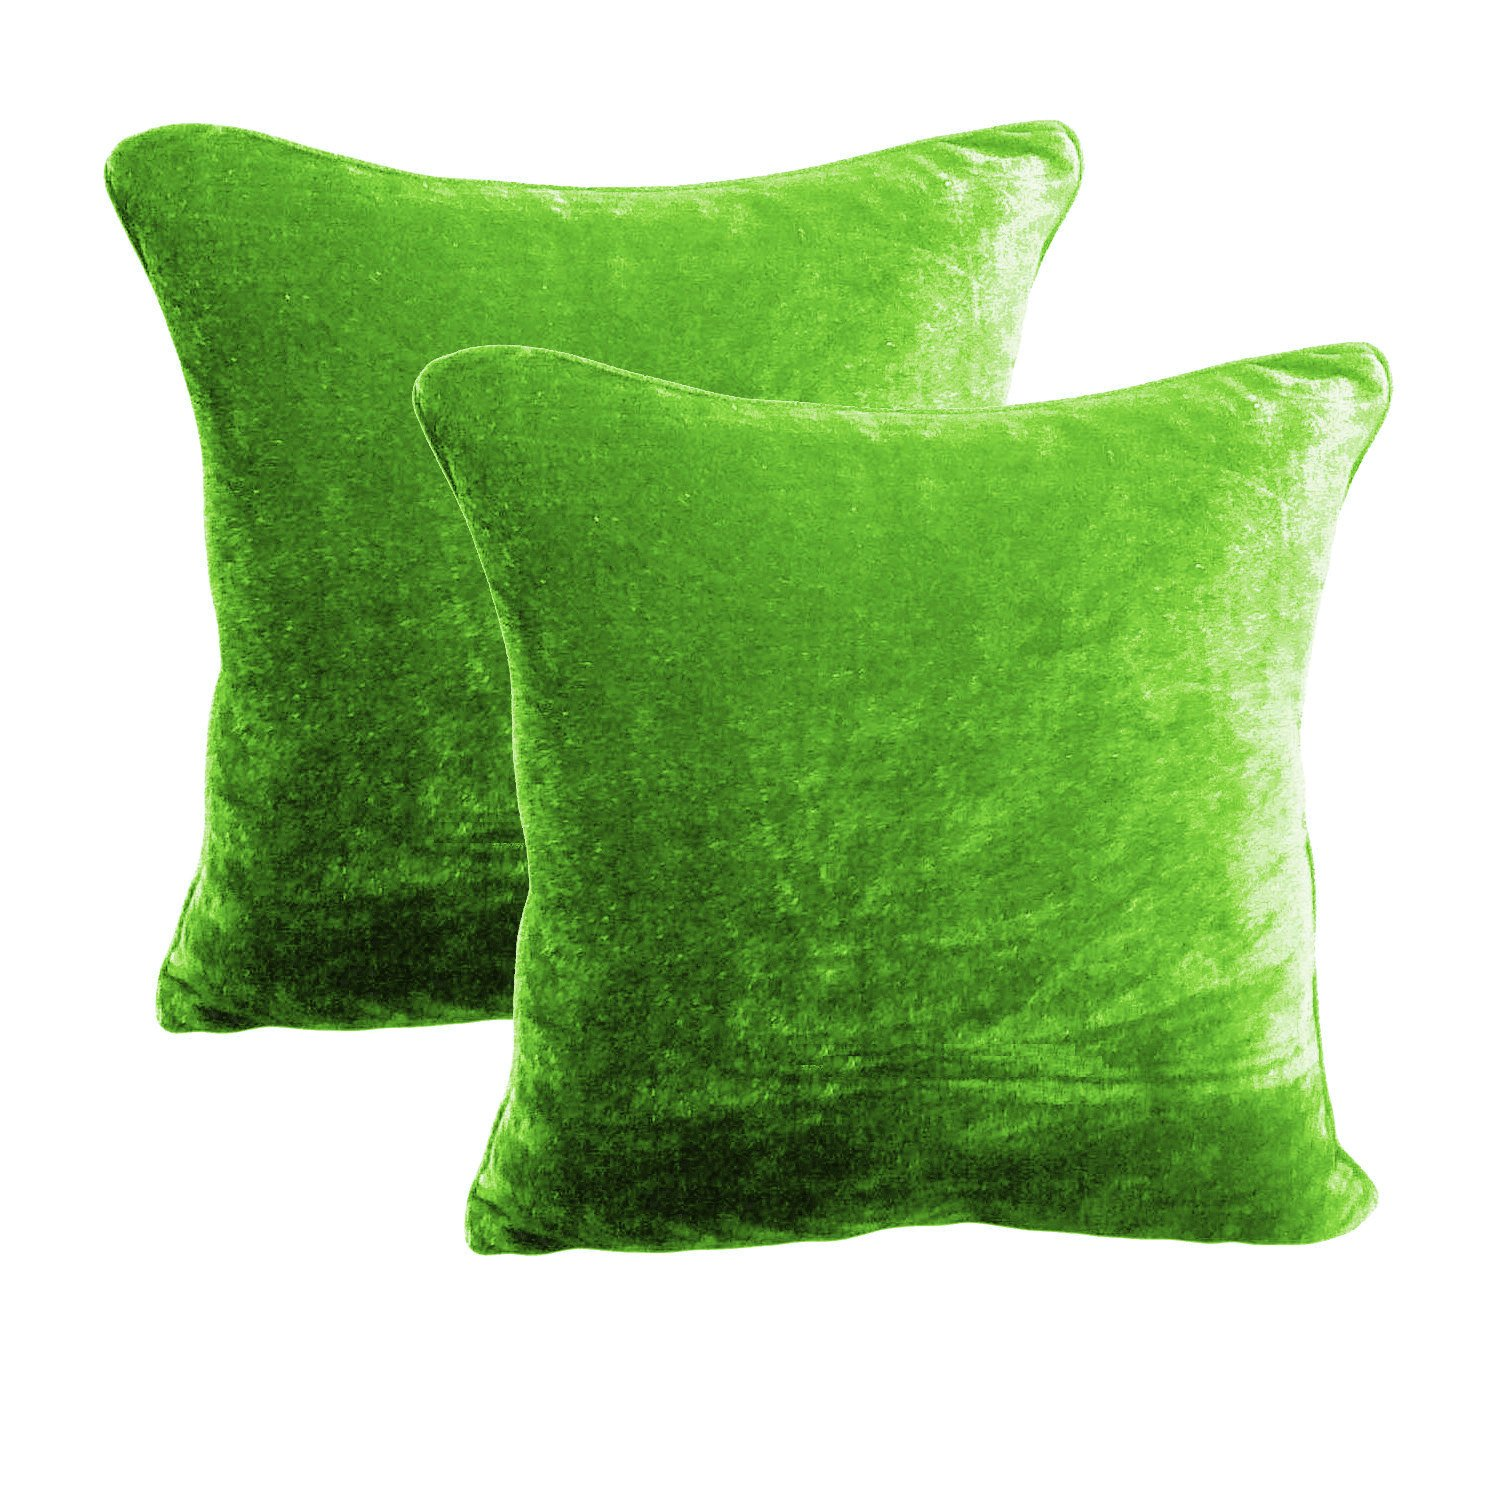 18 by 18 INCHES - 100% COTTON VELVET 6PC ZIPPER PILLOW COVER SHAMS EURO SAGE GREEN